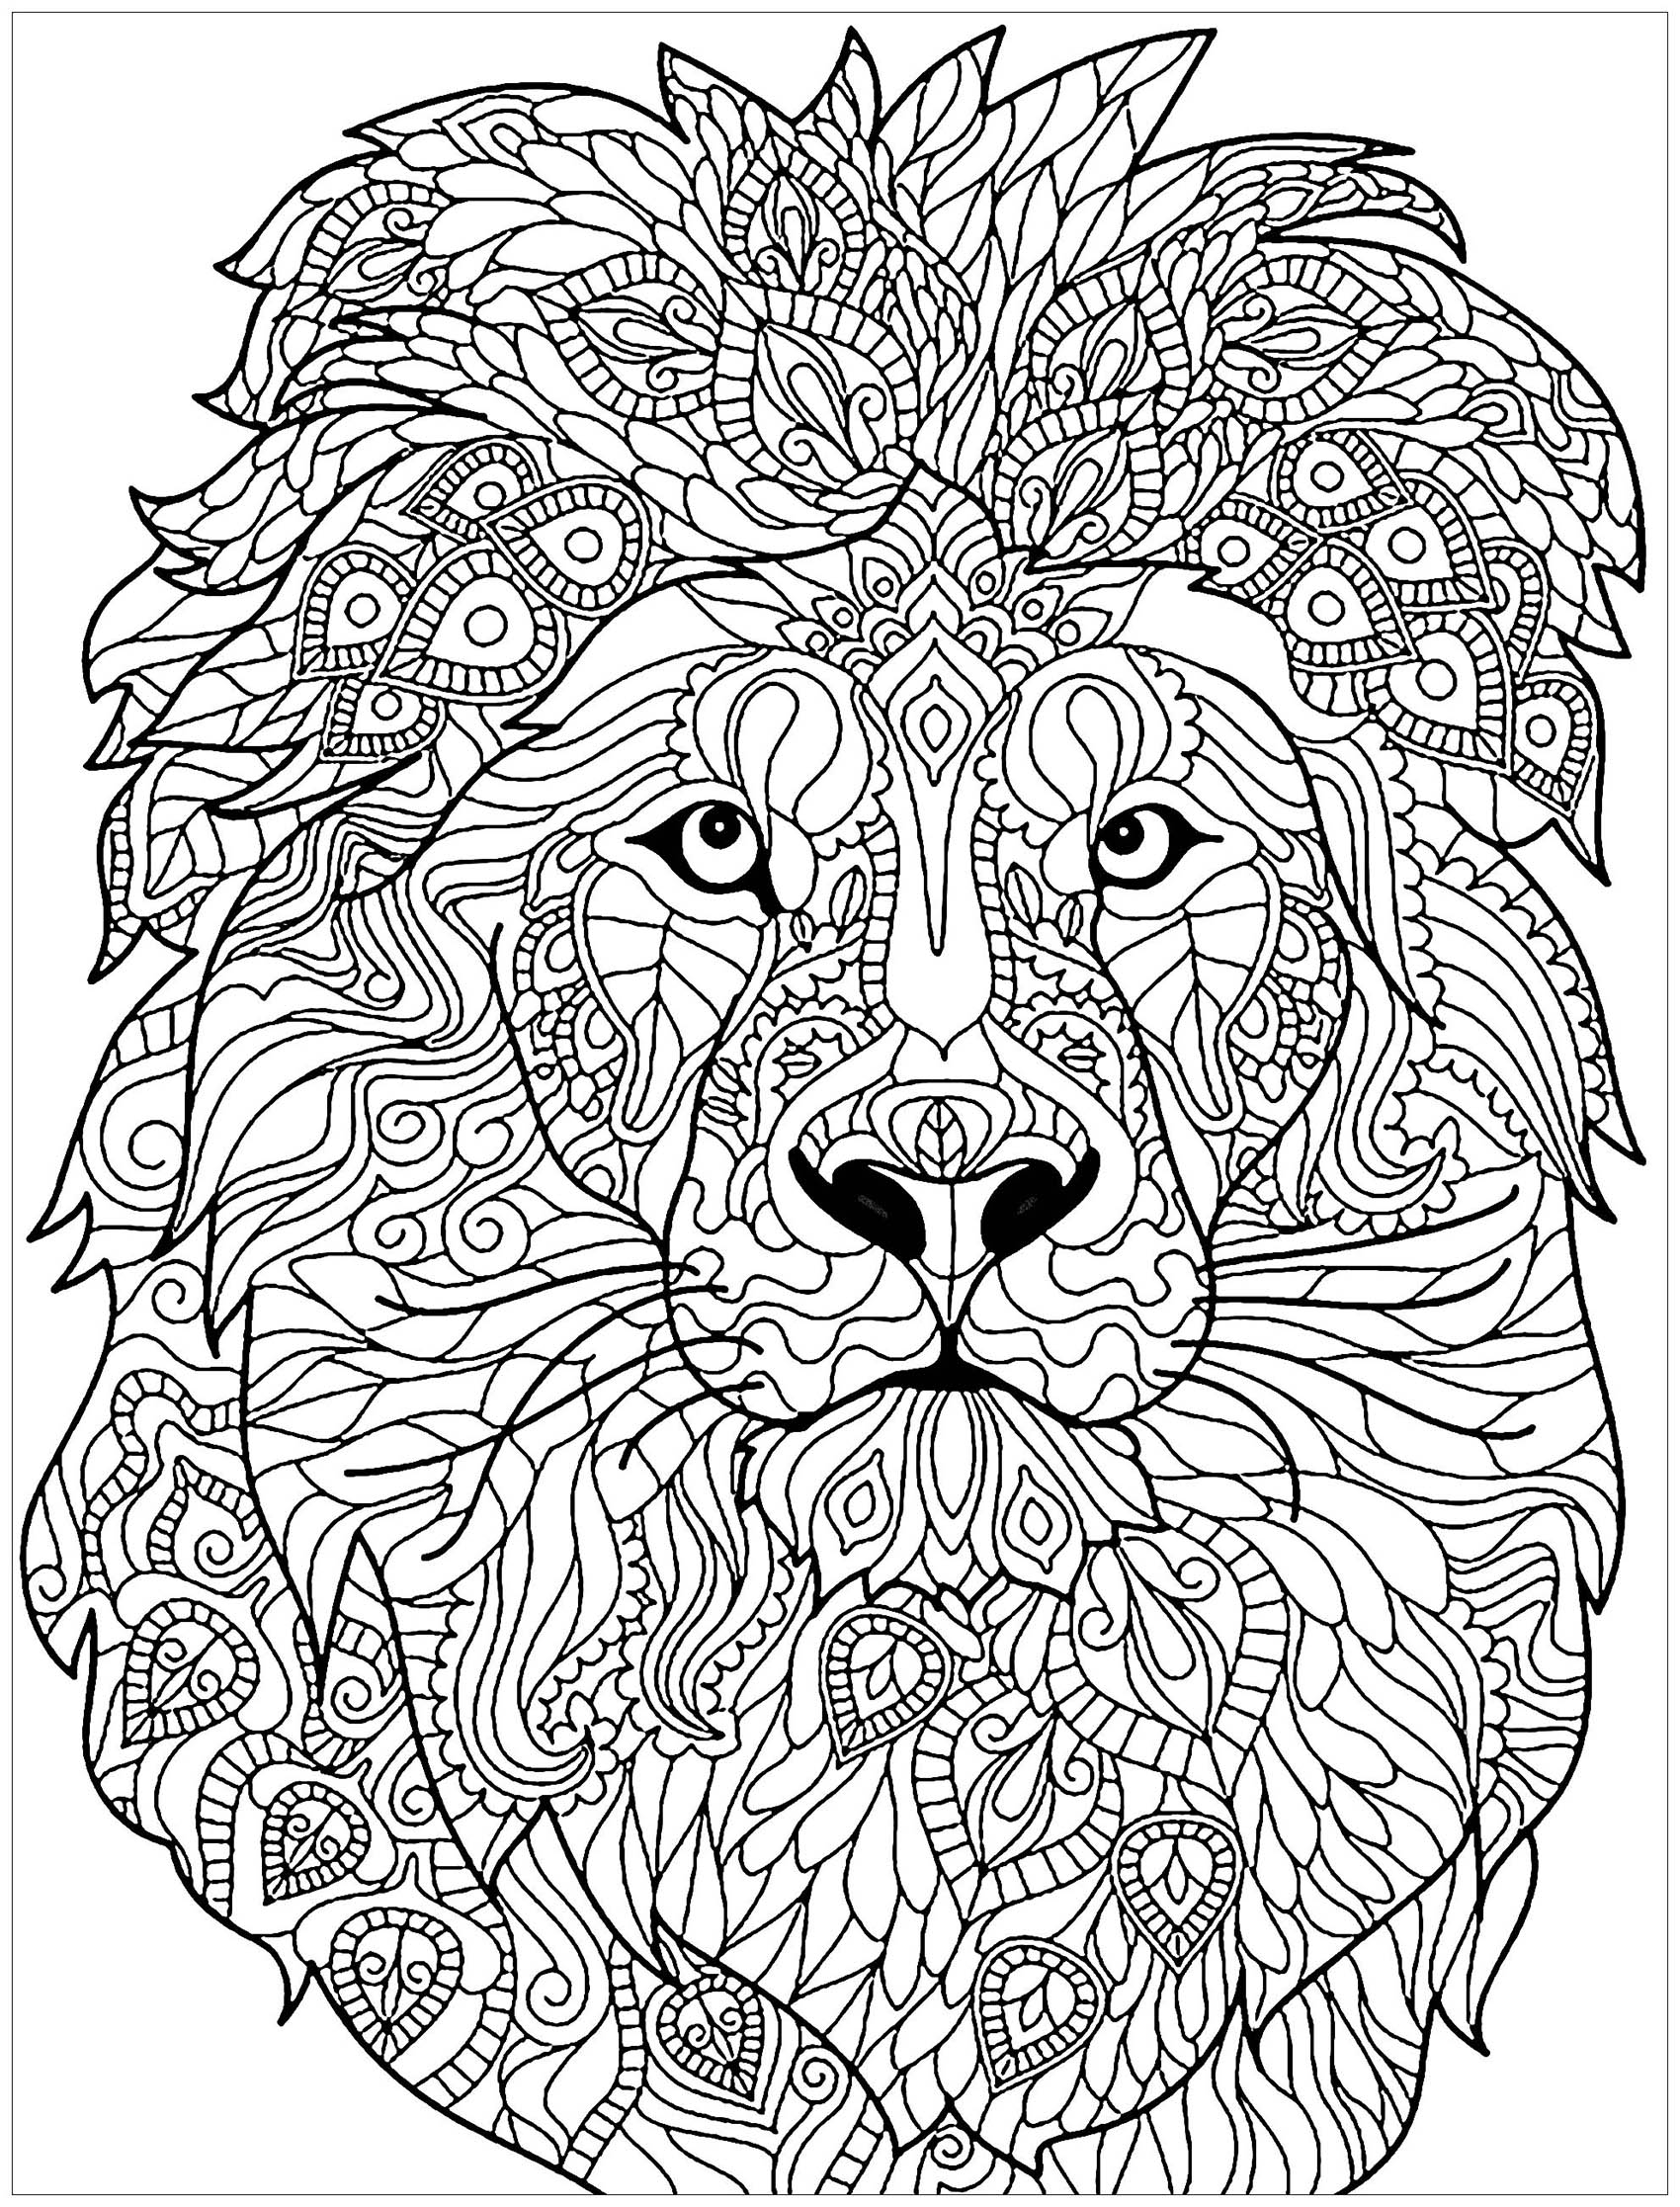 Lion Free To Color For Kids Lion Kids Coloring Pages